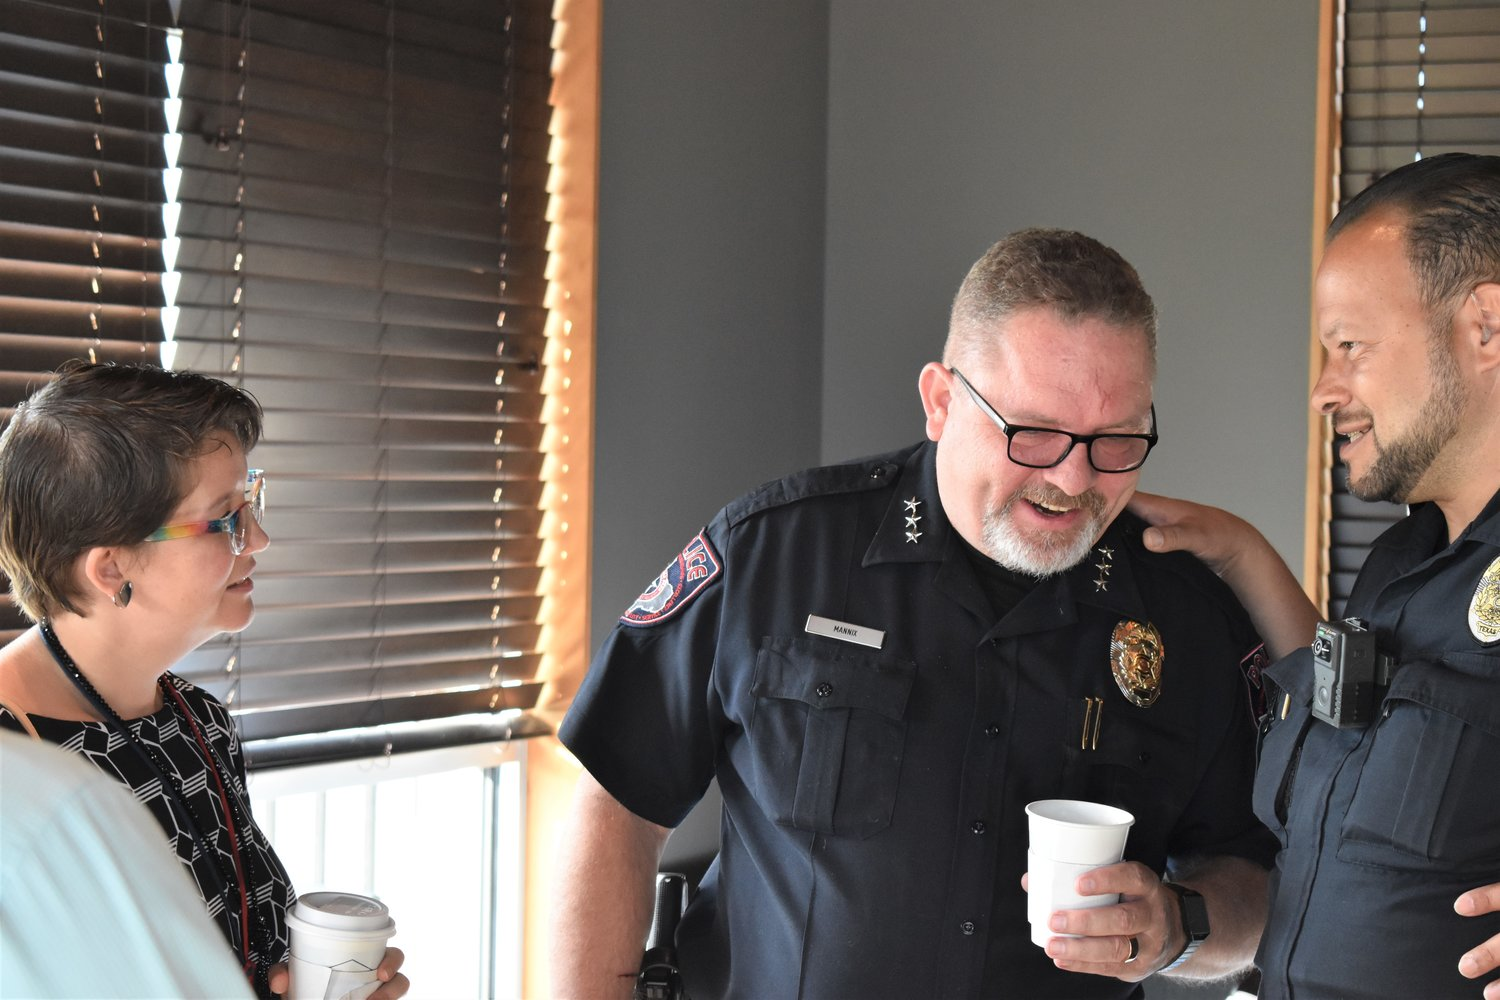 Cedar Park Police Chief Sean Mannix  laughs at an aside by Cedar Park police officer David Camacho while they speak with residents as part of the Coffee With A Cop event.